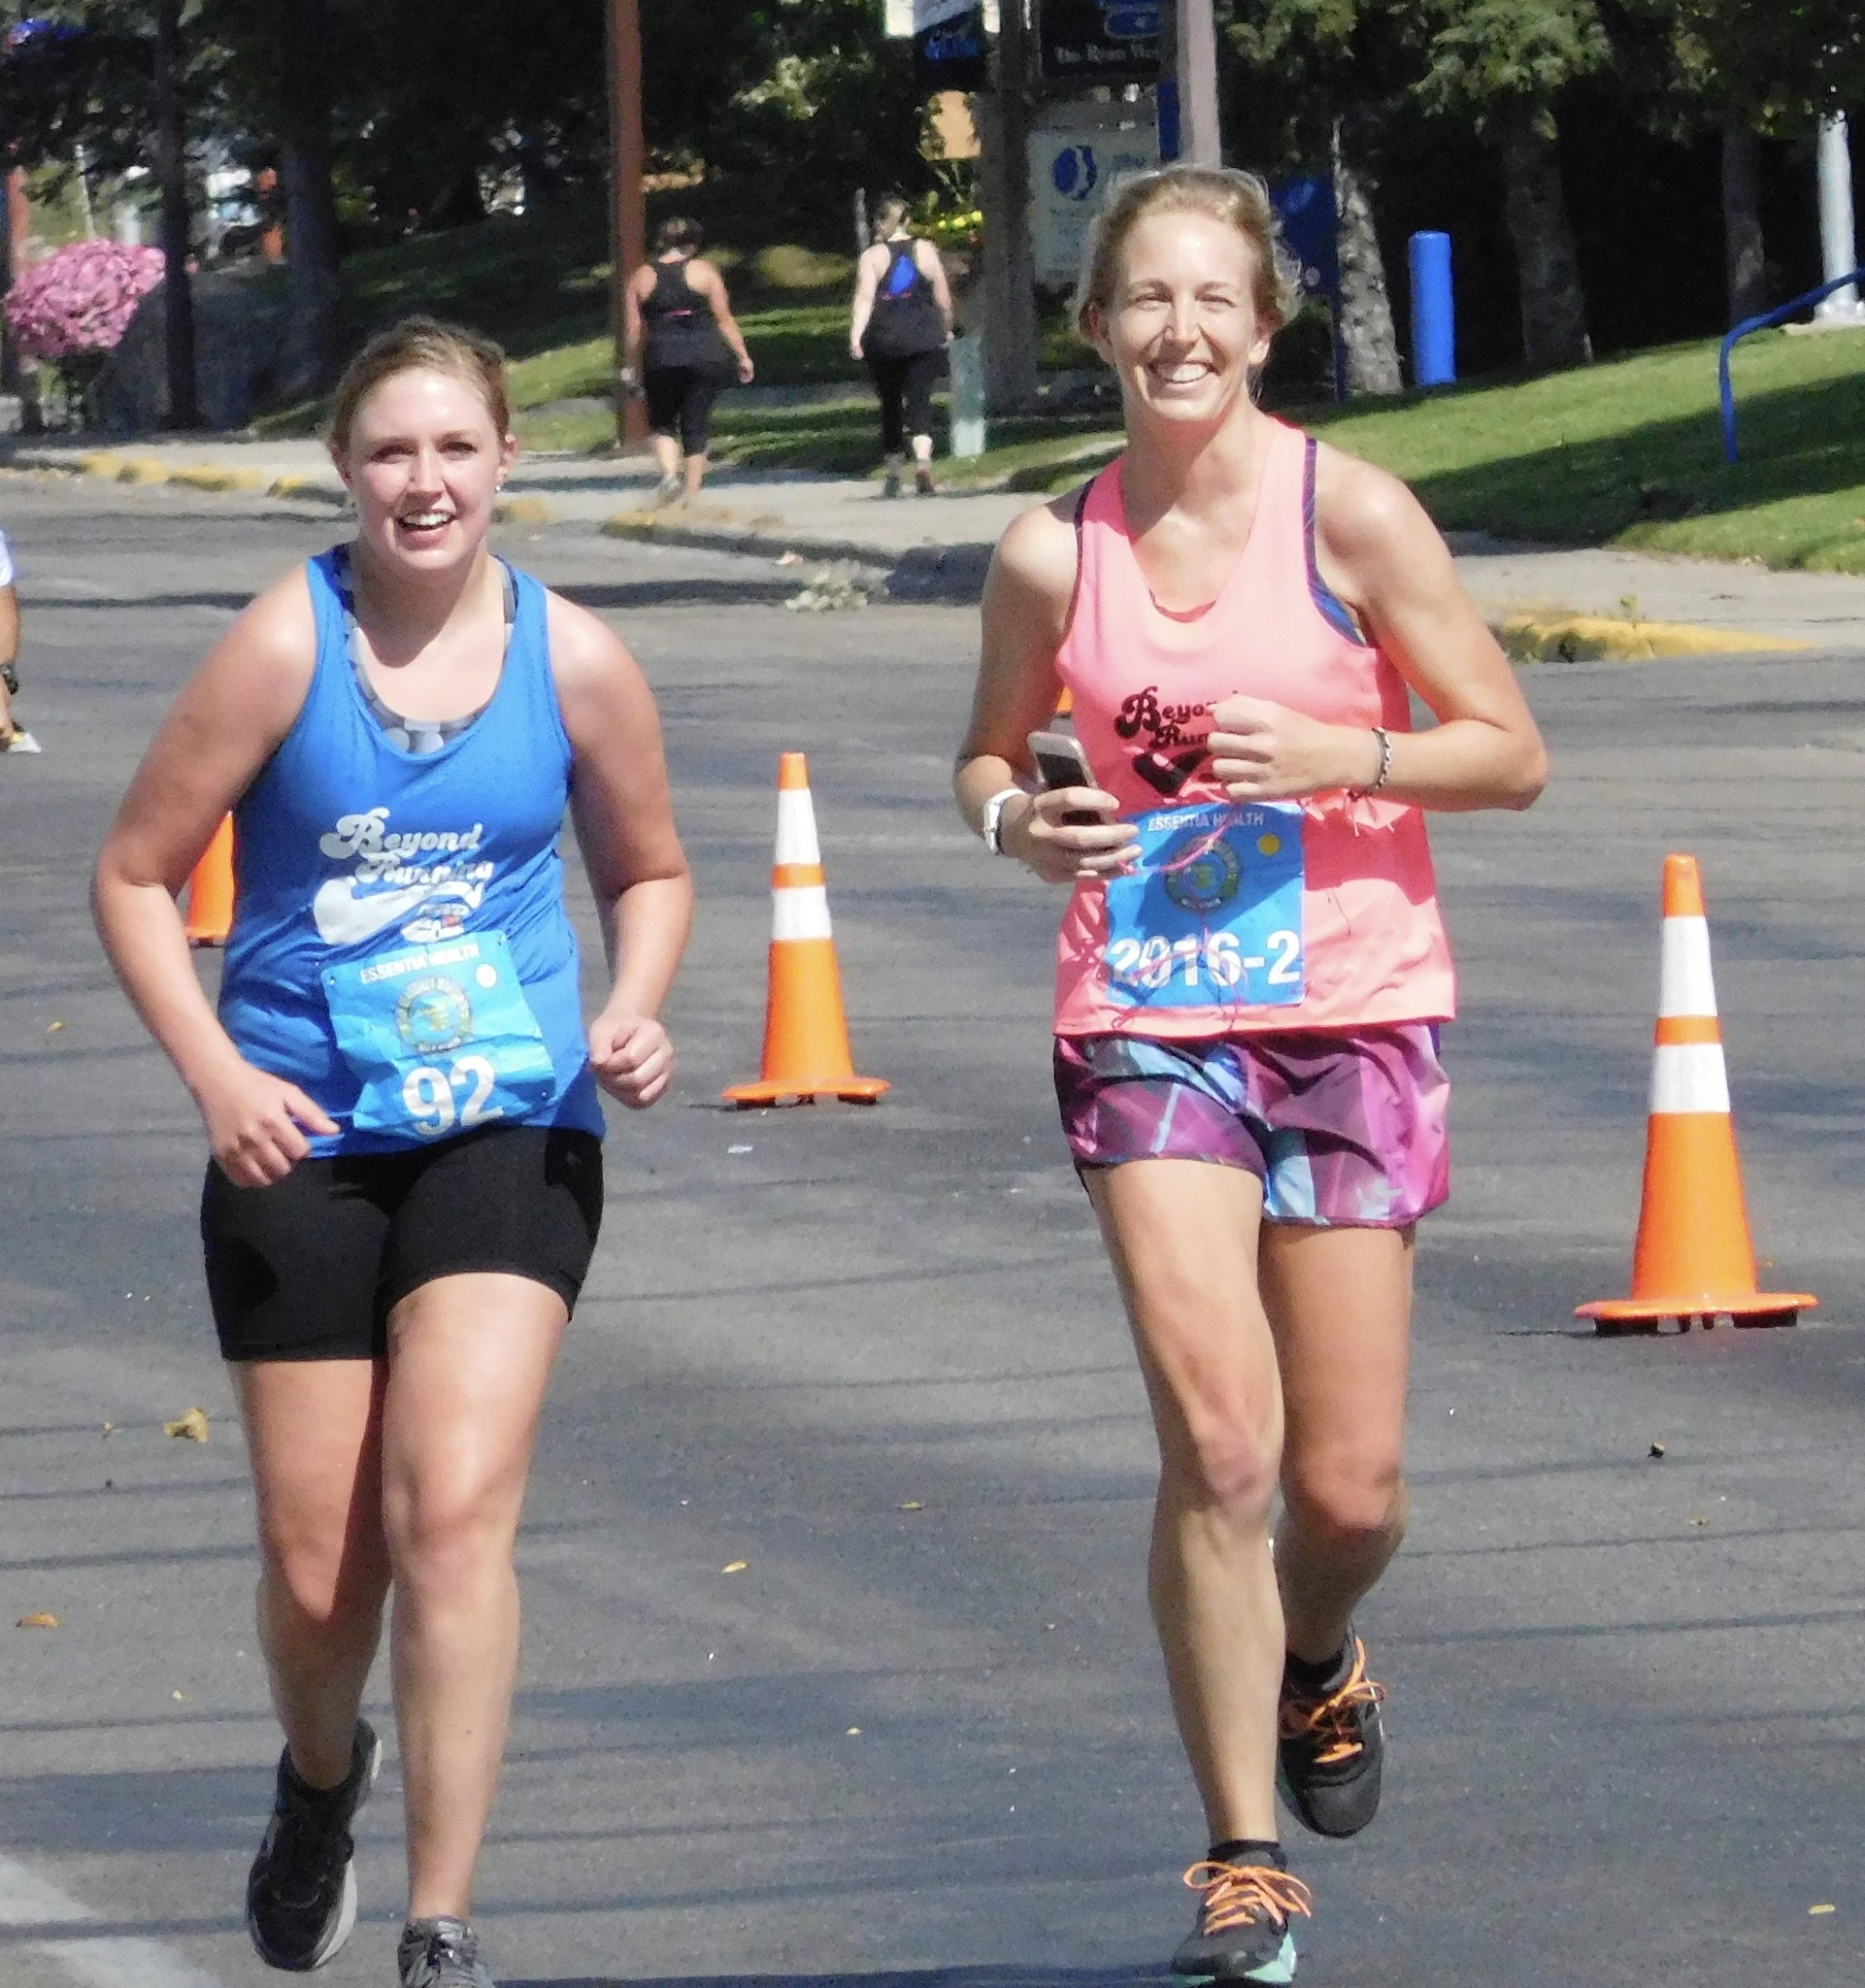 When you want to start running: Mental Must Haves